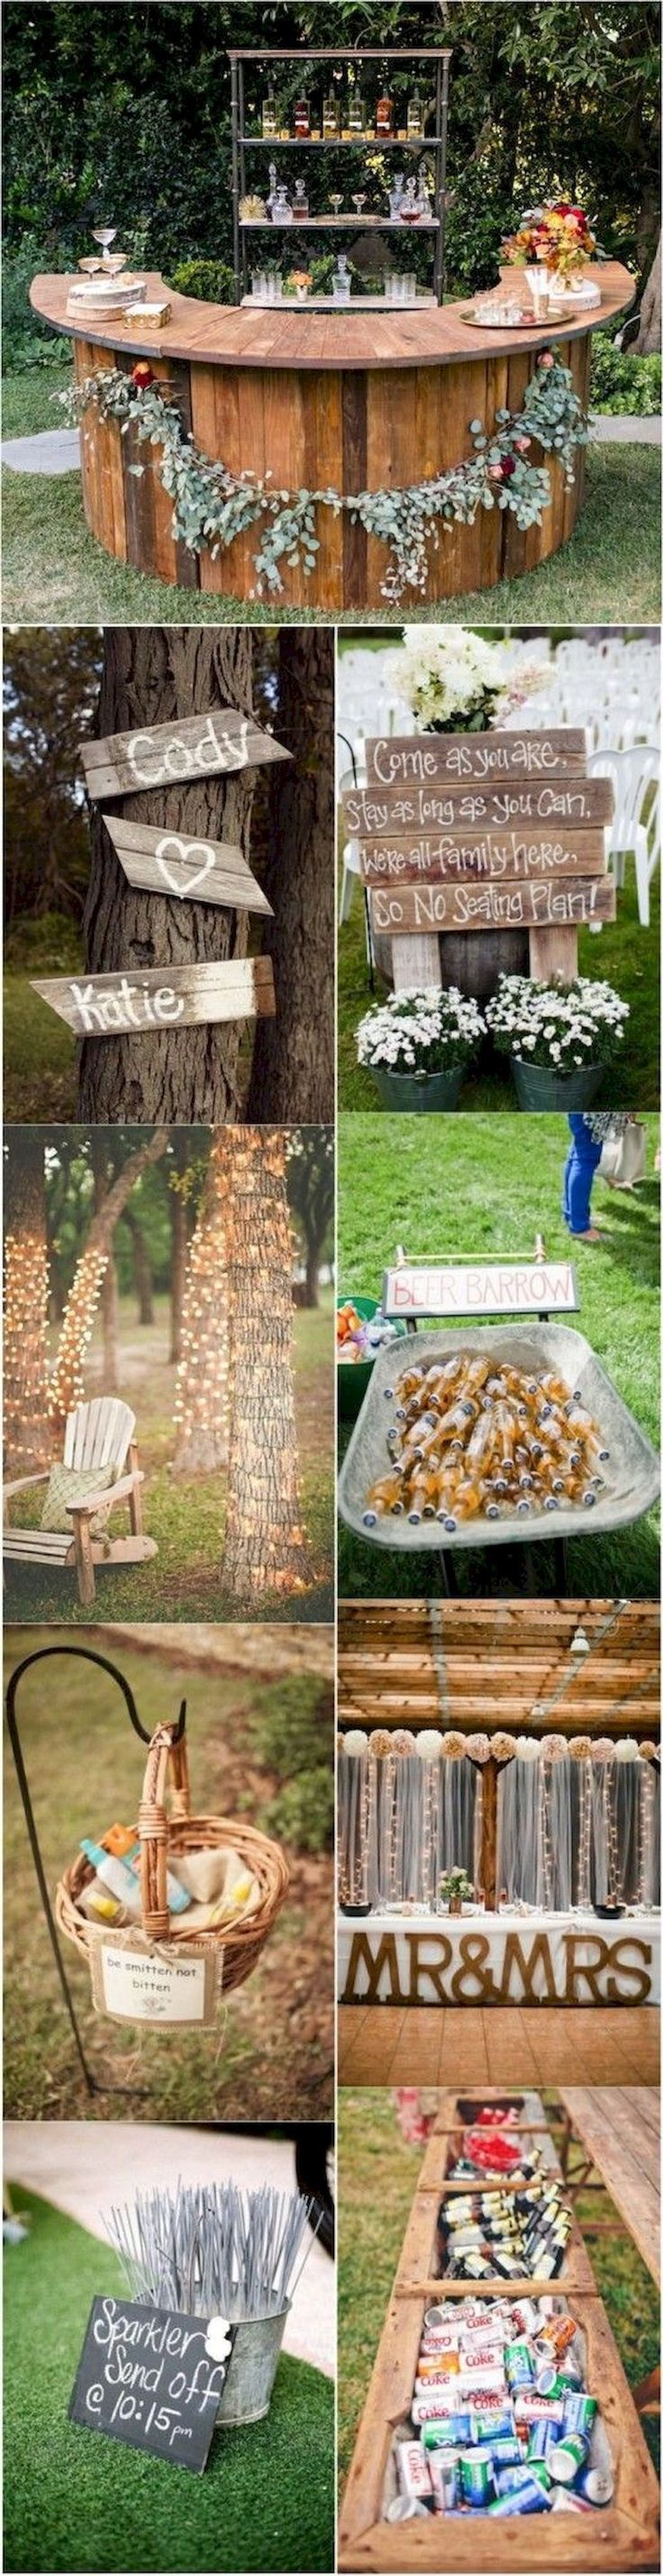 Elegant outdoor wedding decor ideas on a budget (19) #outdoorweddingdecorations #budgetwedding #budgetweddingideas